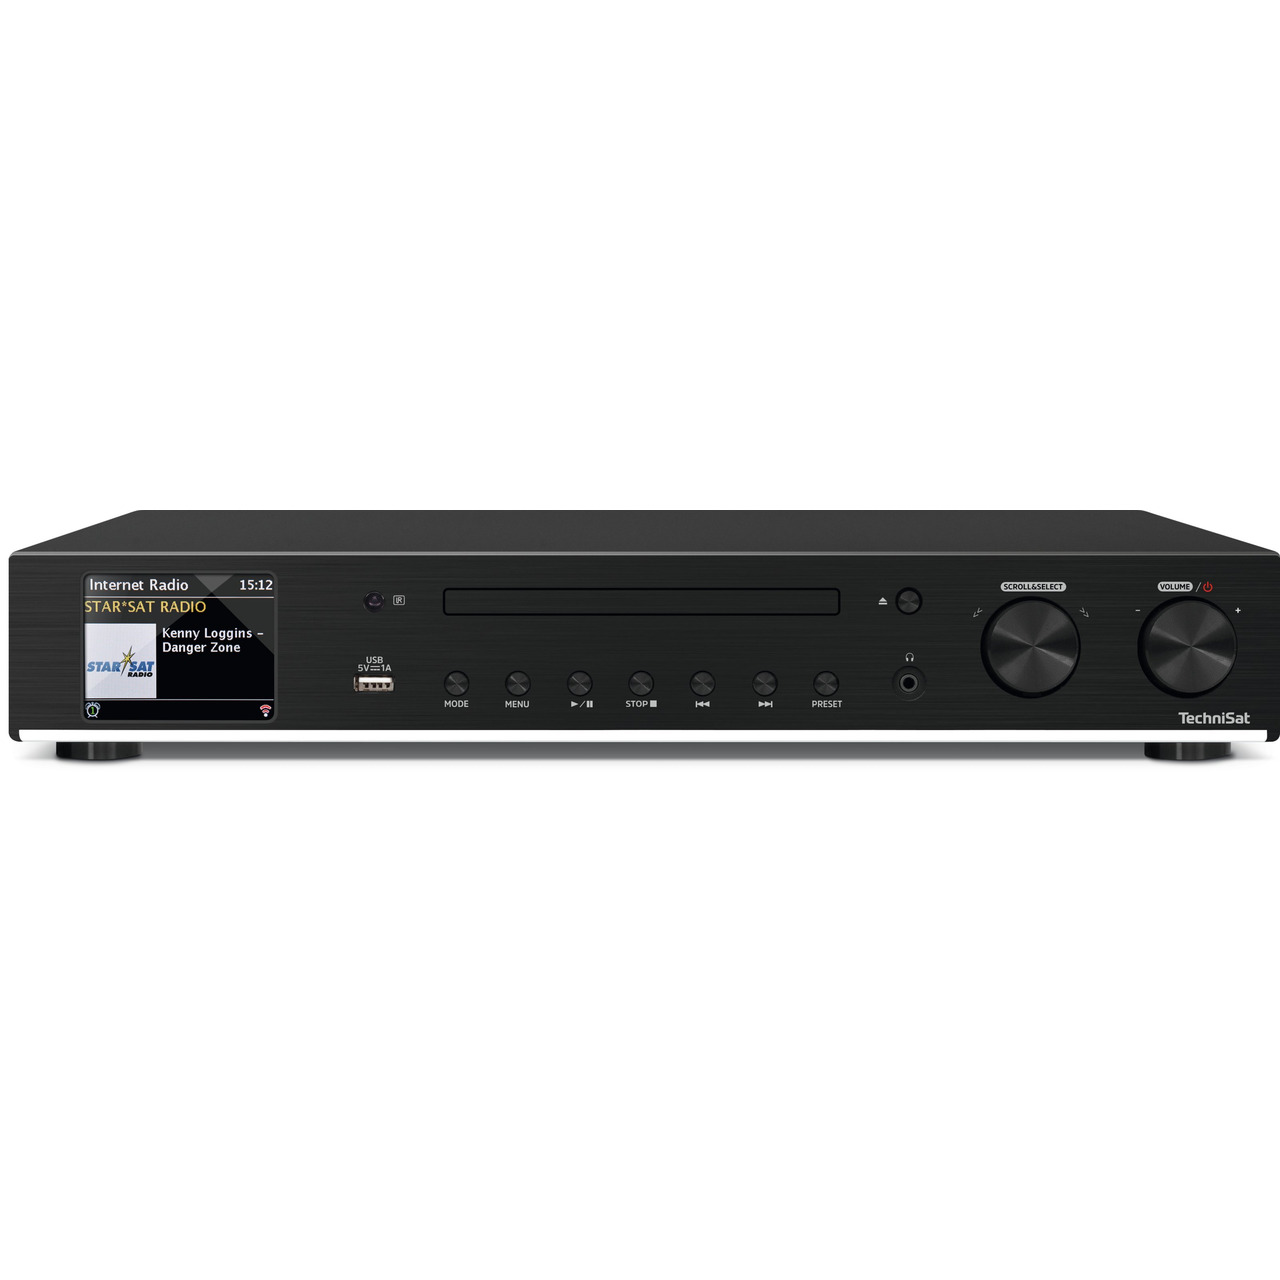 TechniSat Radio-HiFi-Tuner DigitRadio 143 CD- DAB+-UKW-Internetradio- USB- Bluetooth- CD-Player